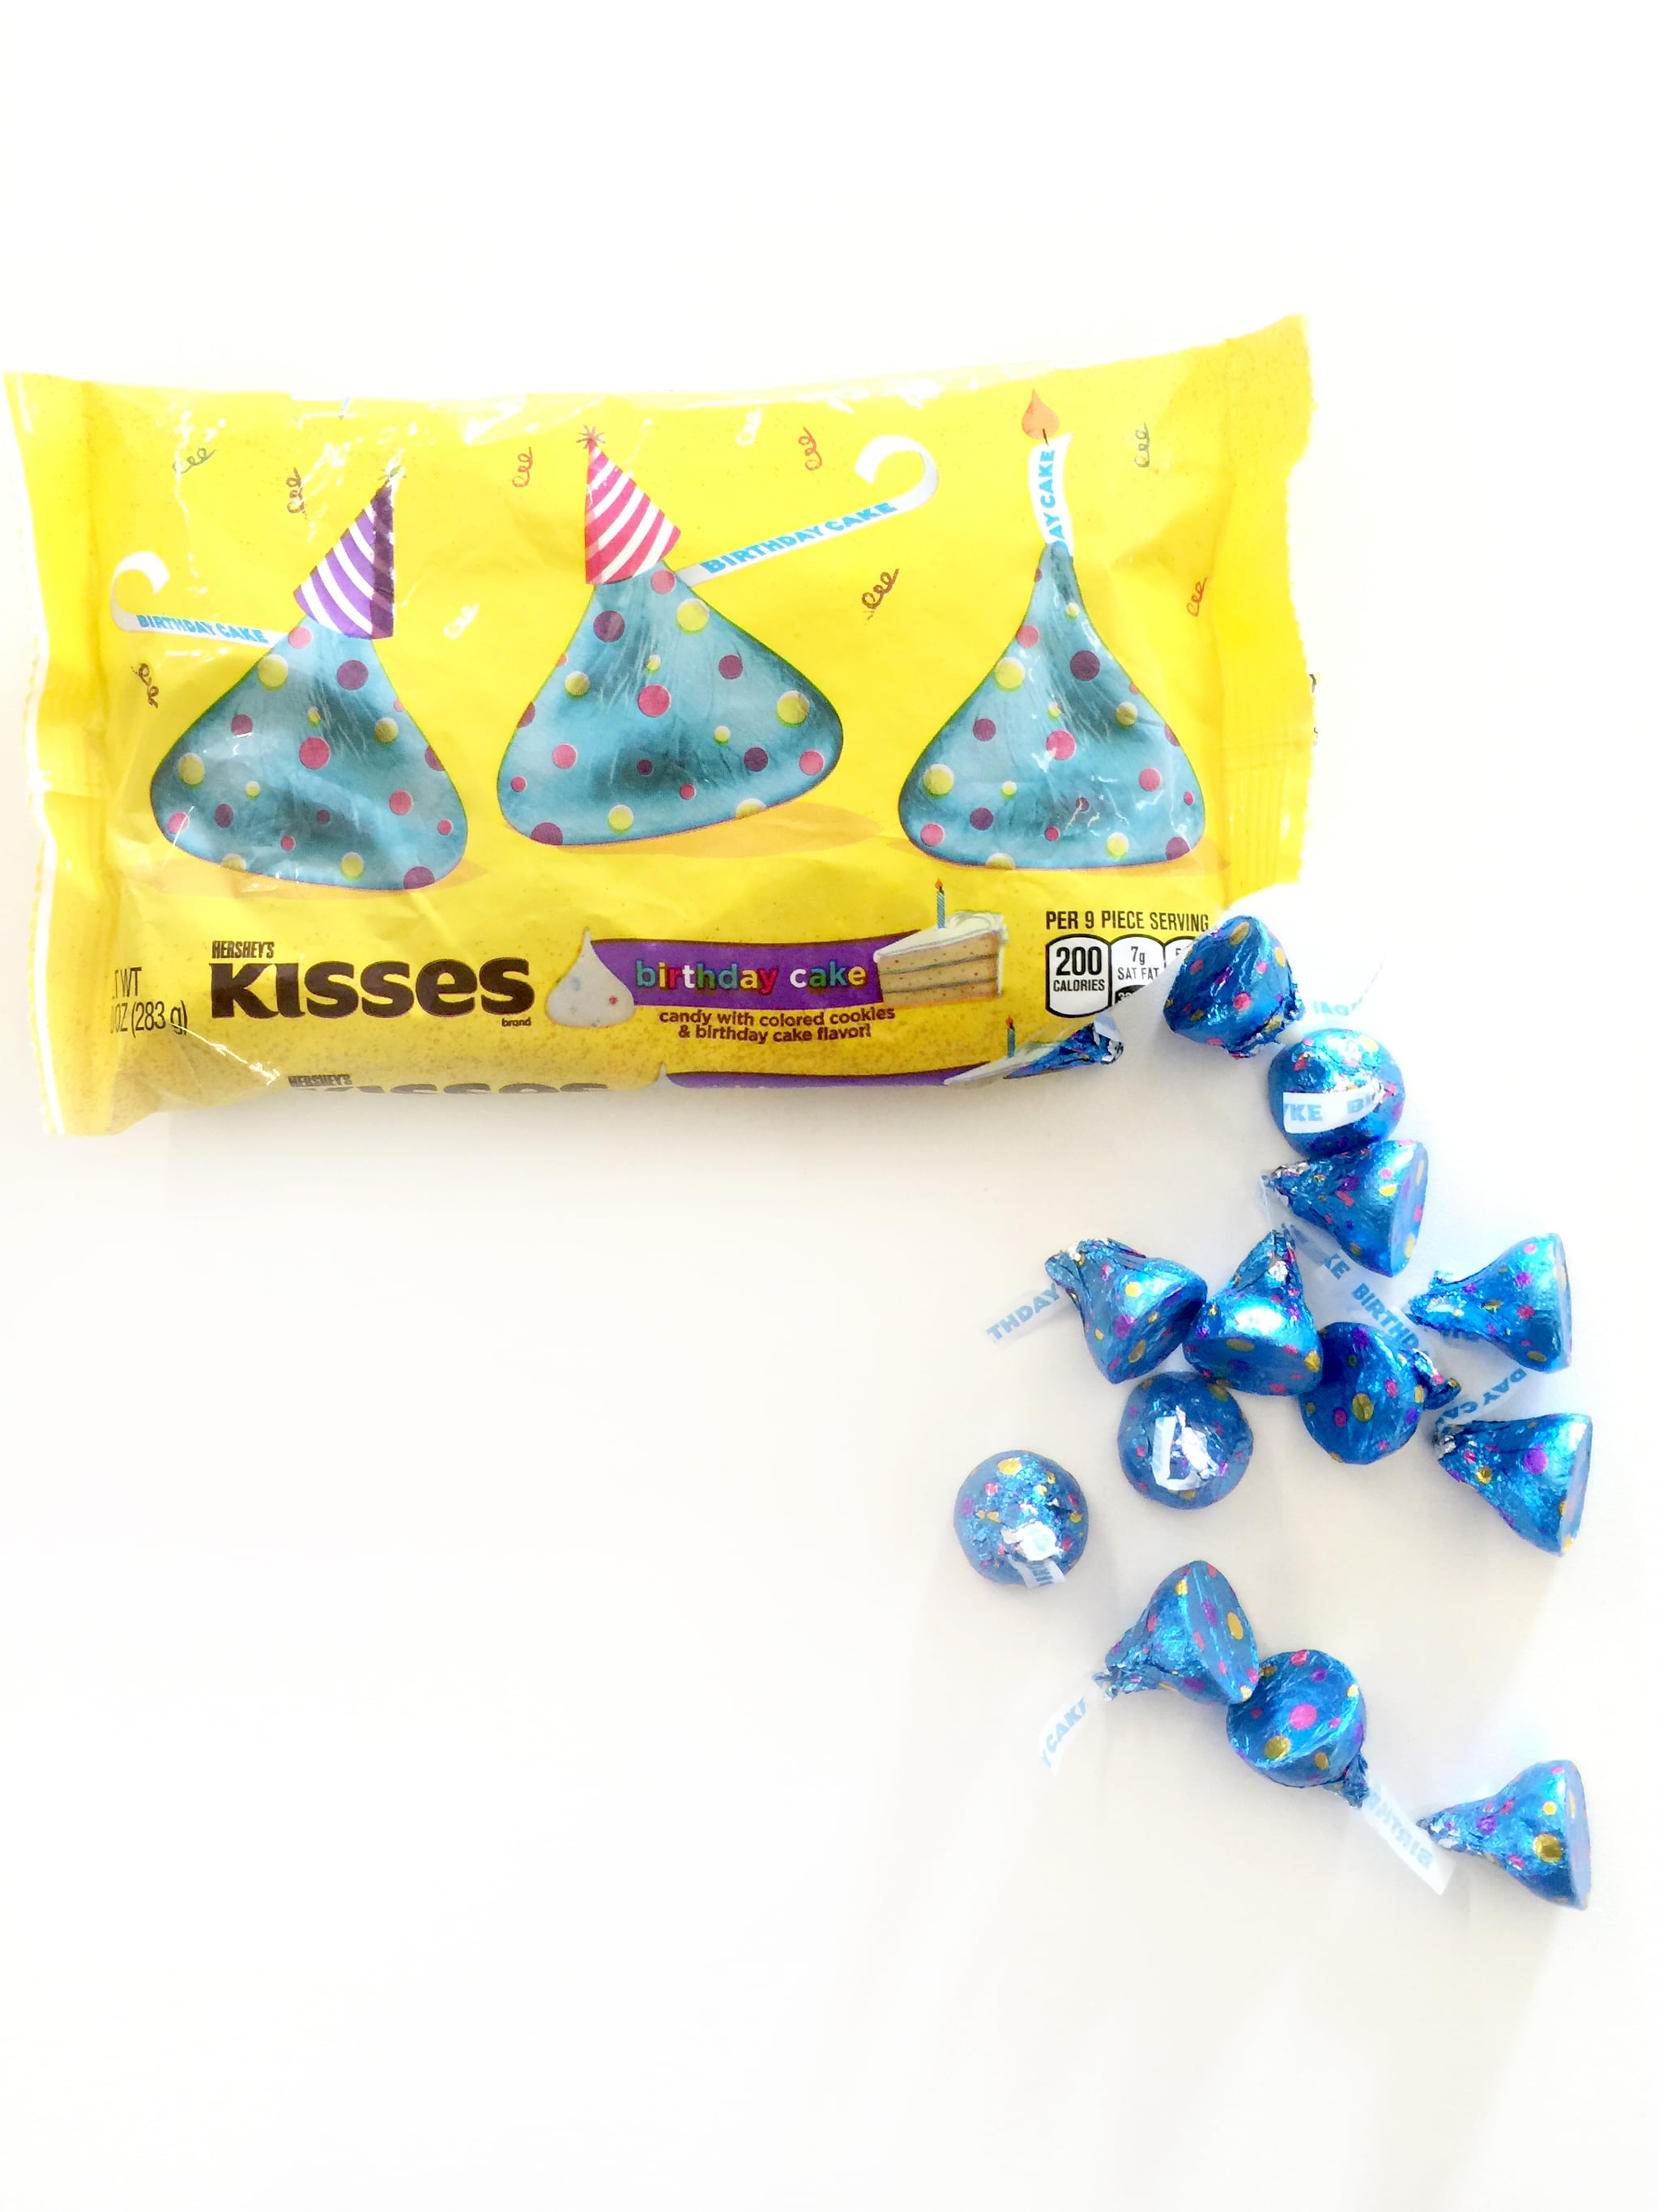 Hershey Kisses Birthday Cake Flavor